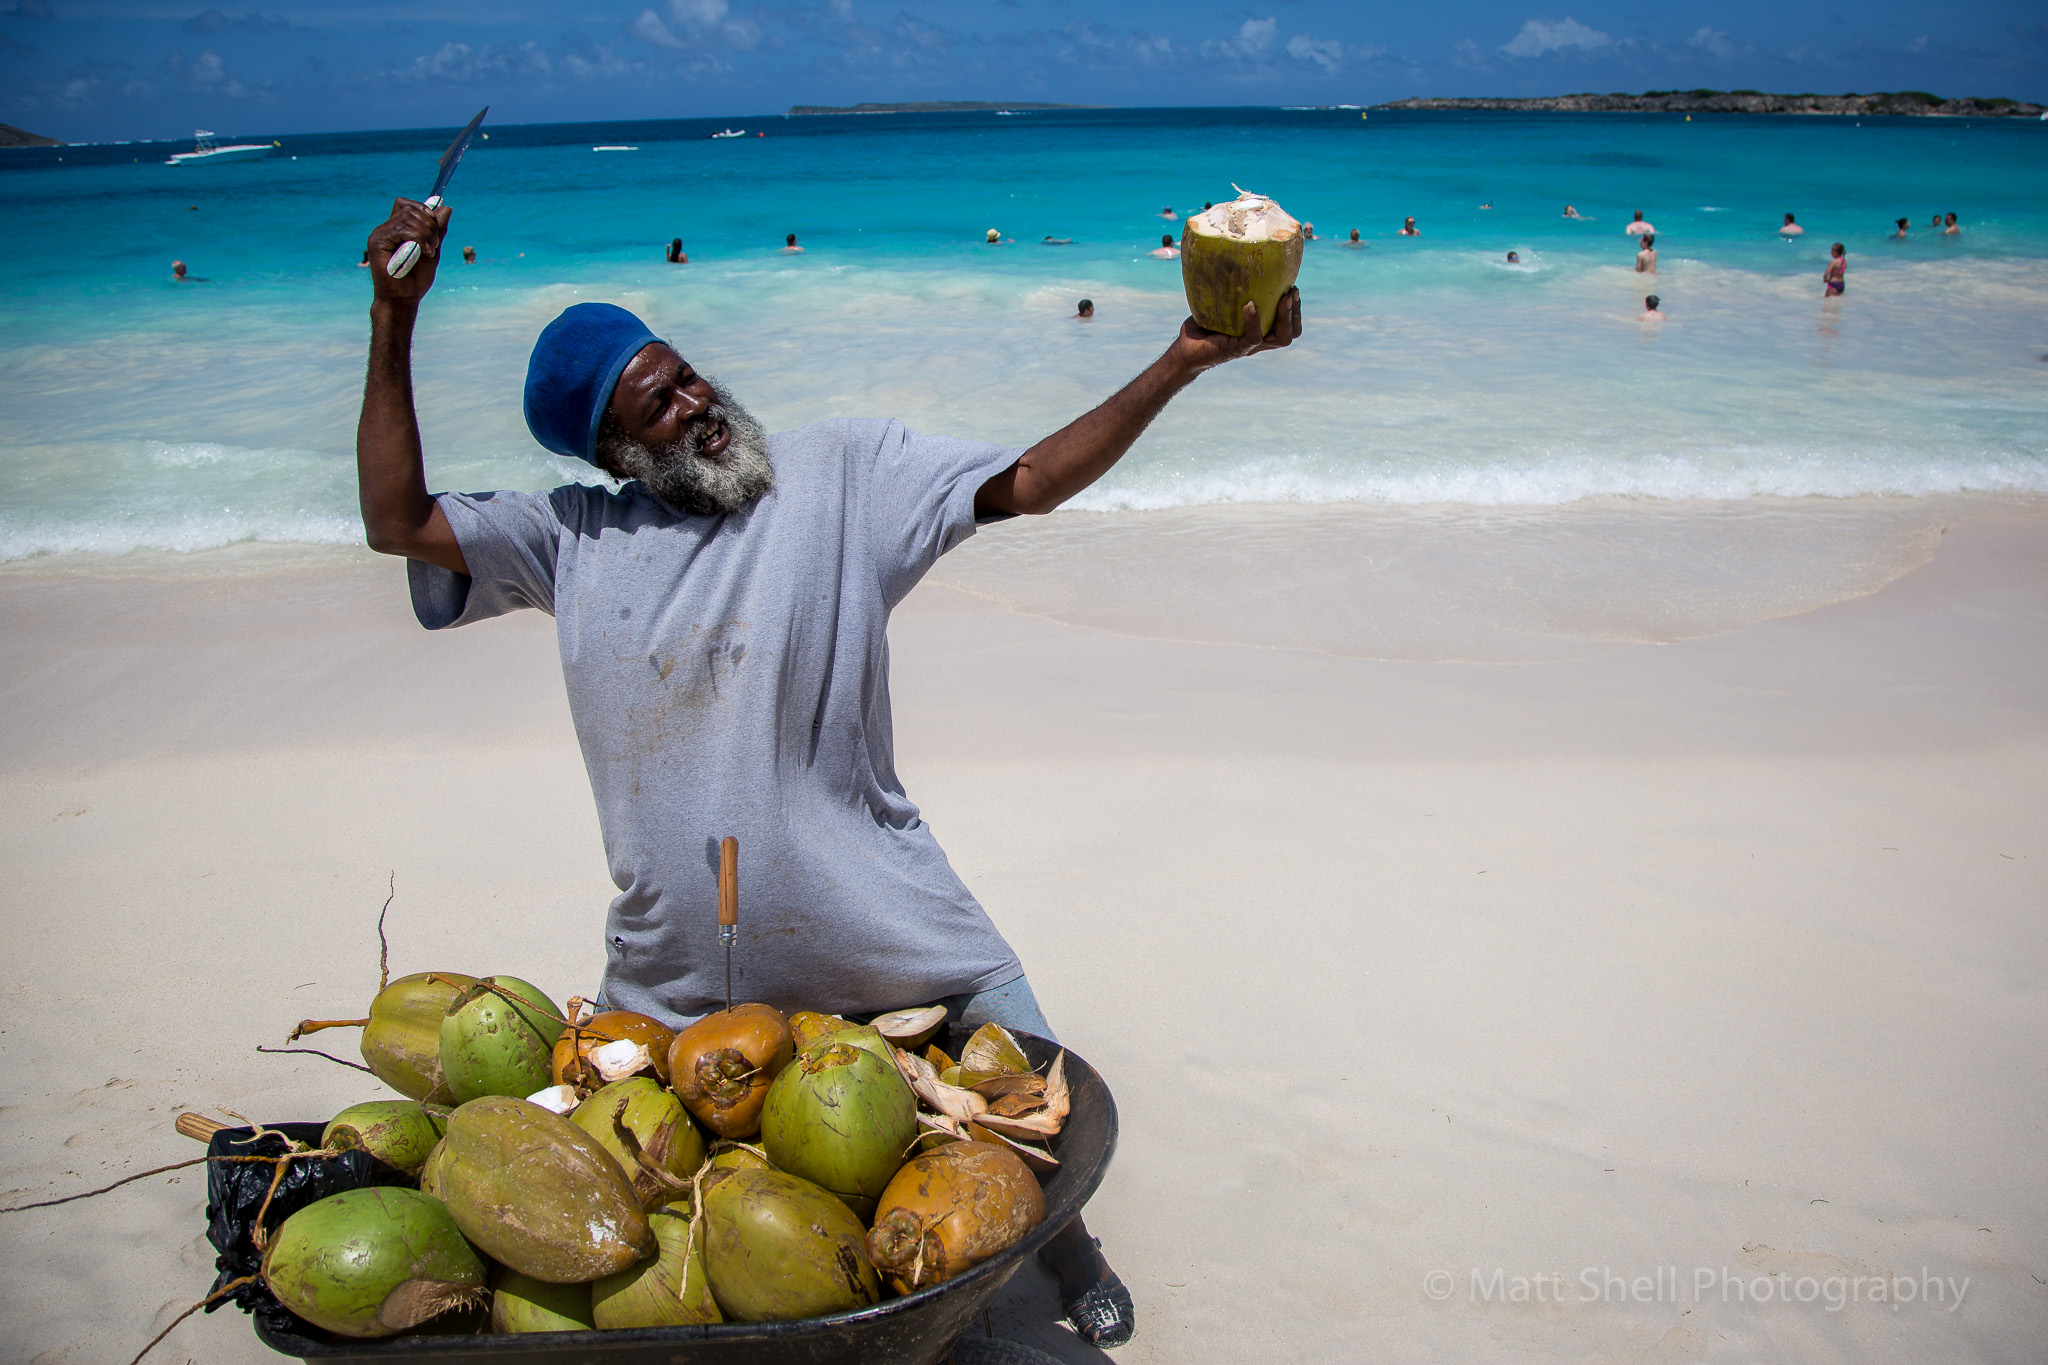 This guy was selling coconuts on the beach.  When you see people like this, buy what they're selling and then ask to take their picture.  They'll almost always be happy to let you snap away and may even pose a bit for you like this guy.